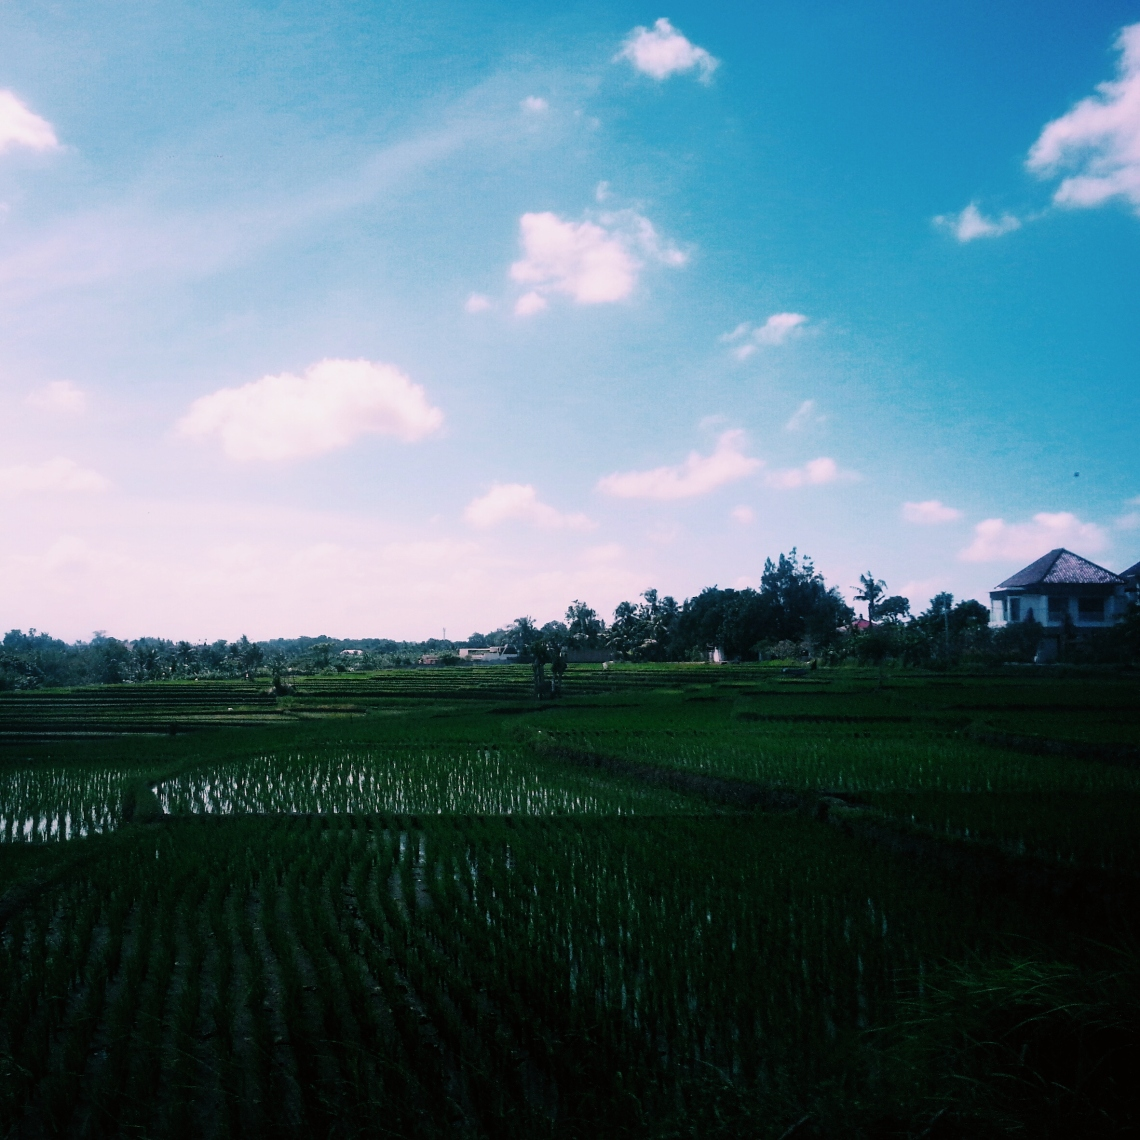 Balinese Rice Paddy Fields